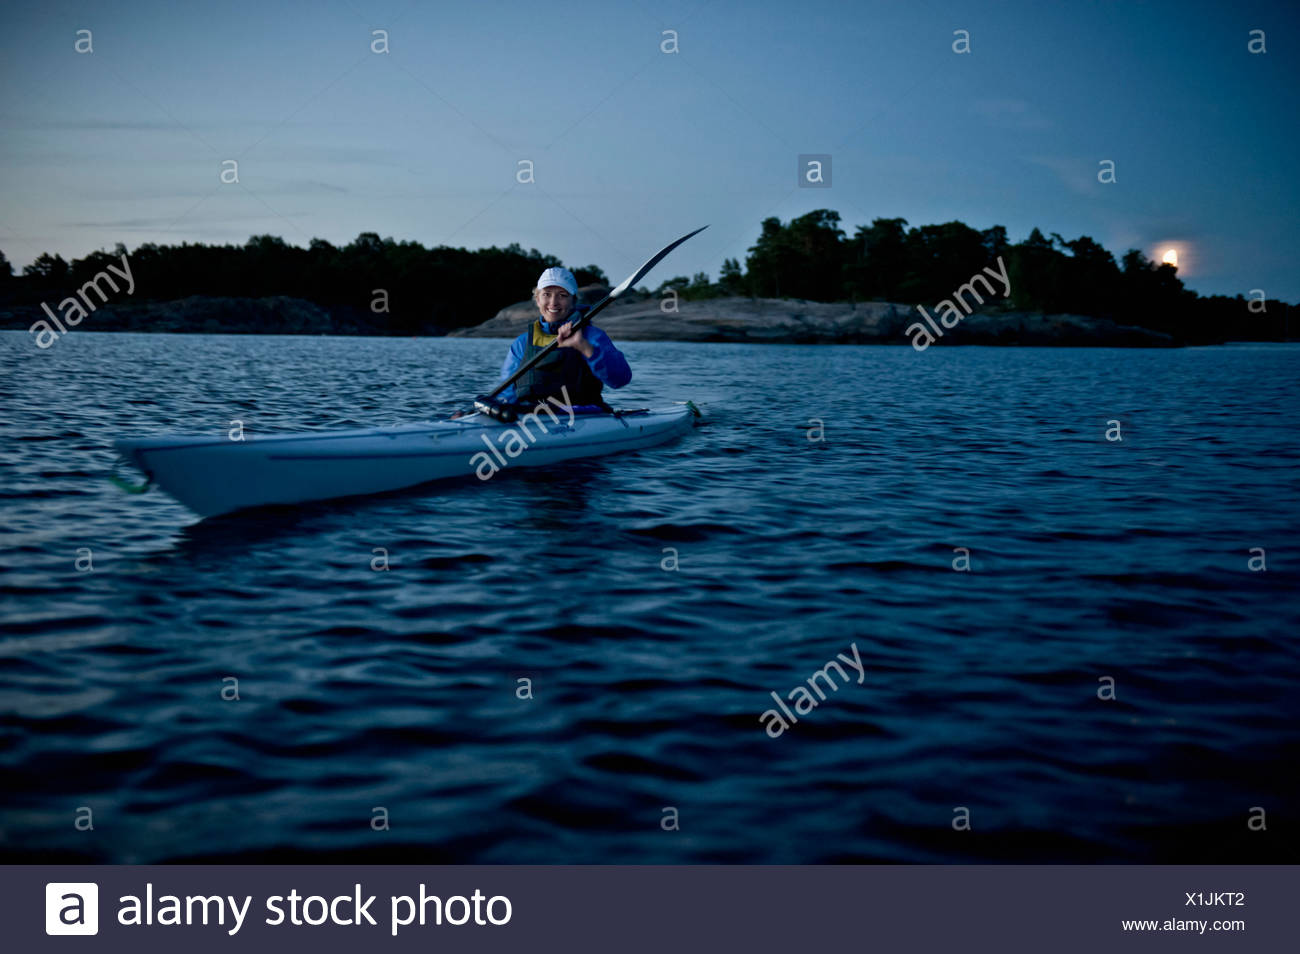 Smiling woman in nautical vessel oaring - Stock Image